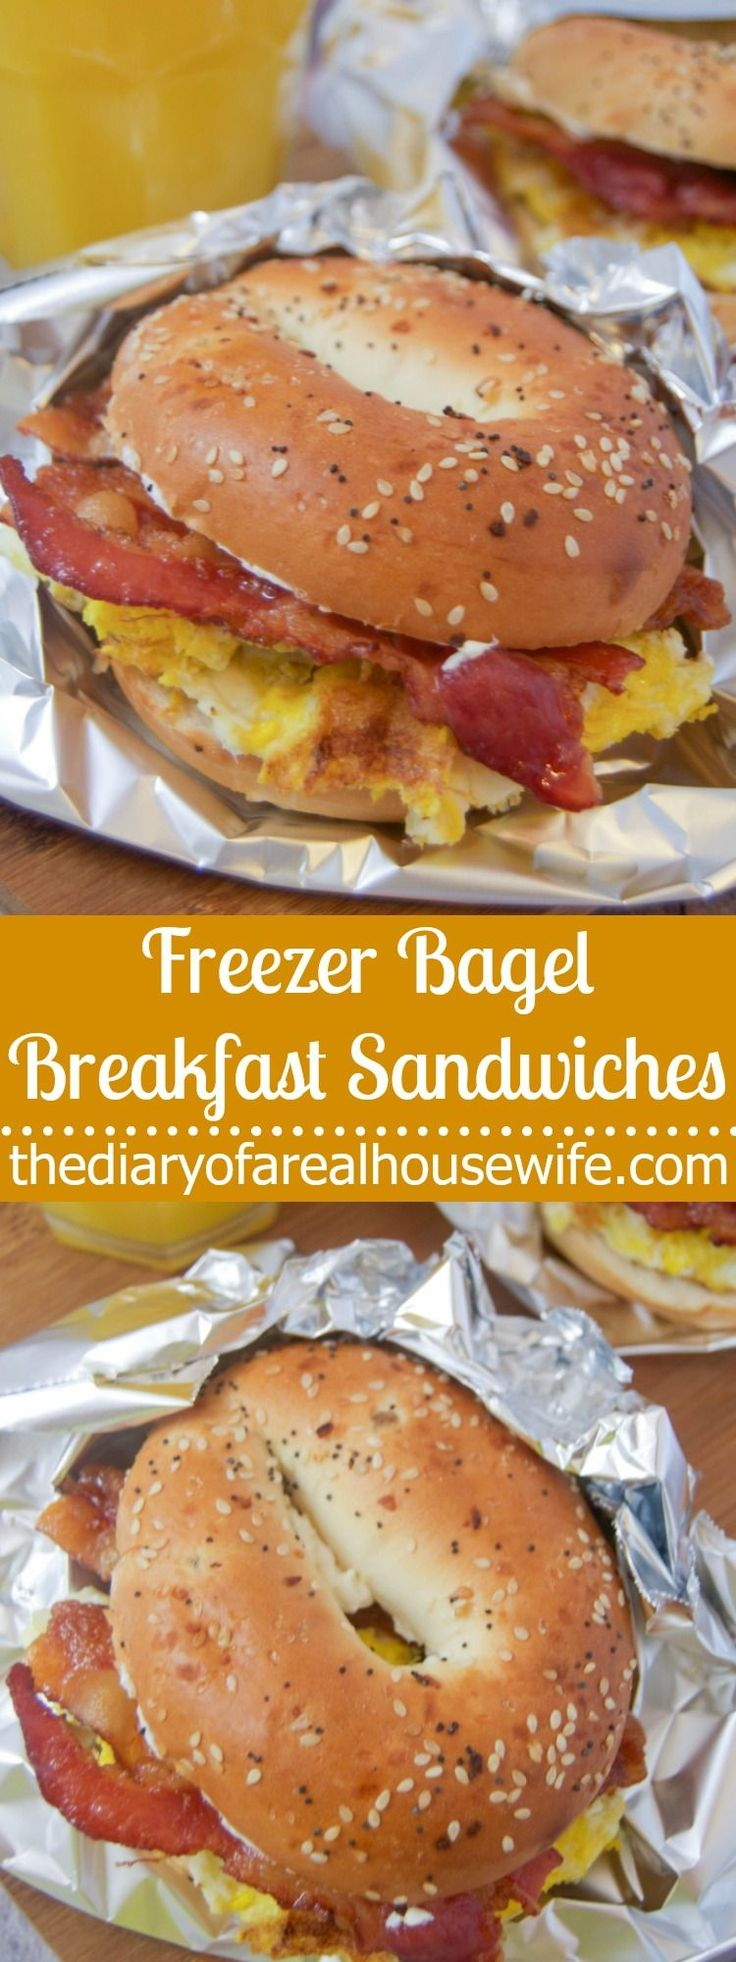 Freezer Bagel Breakfast Sandwiches